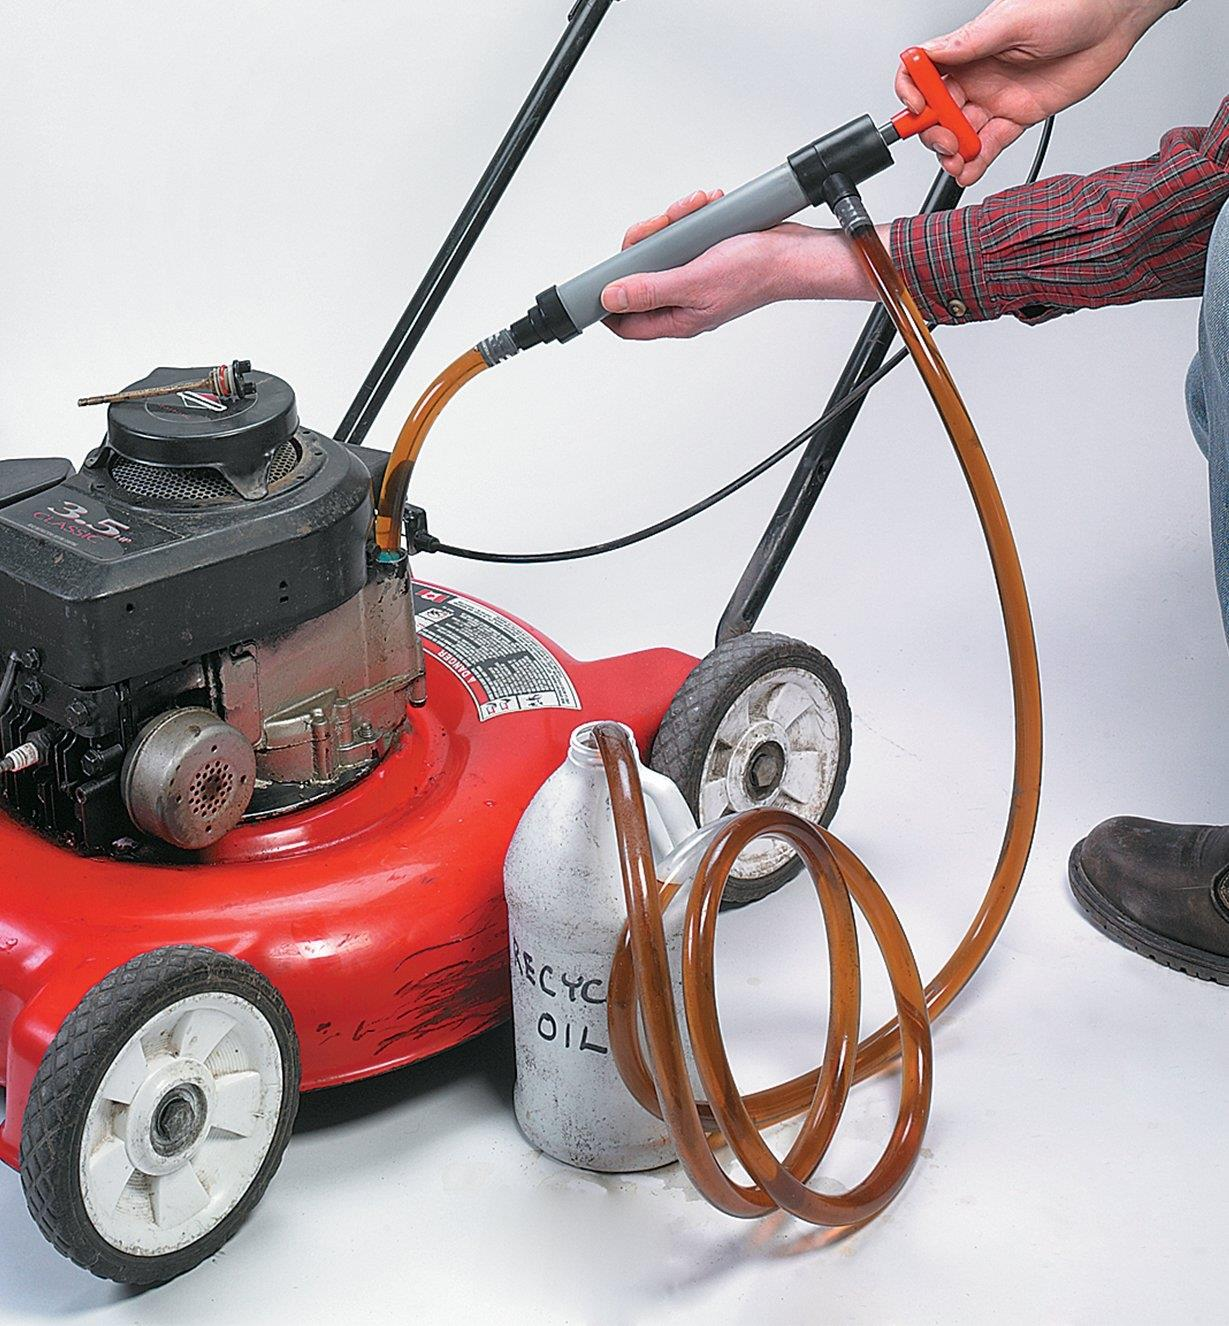 Transfer Siphon Pump removing oil from a lawnmower